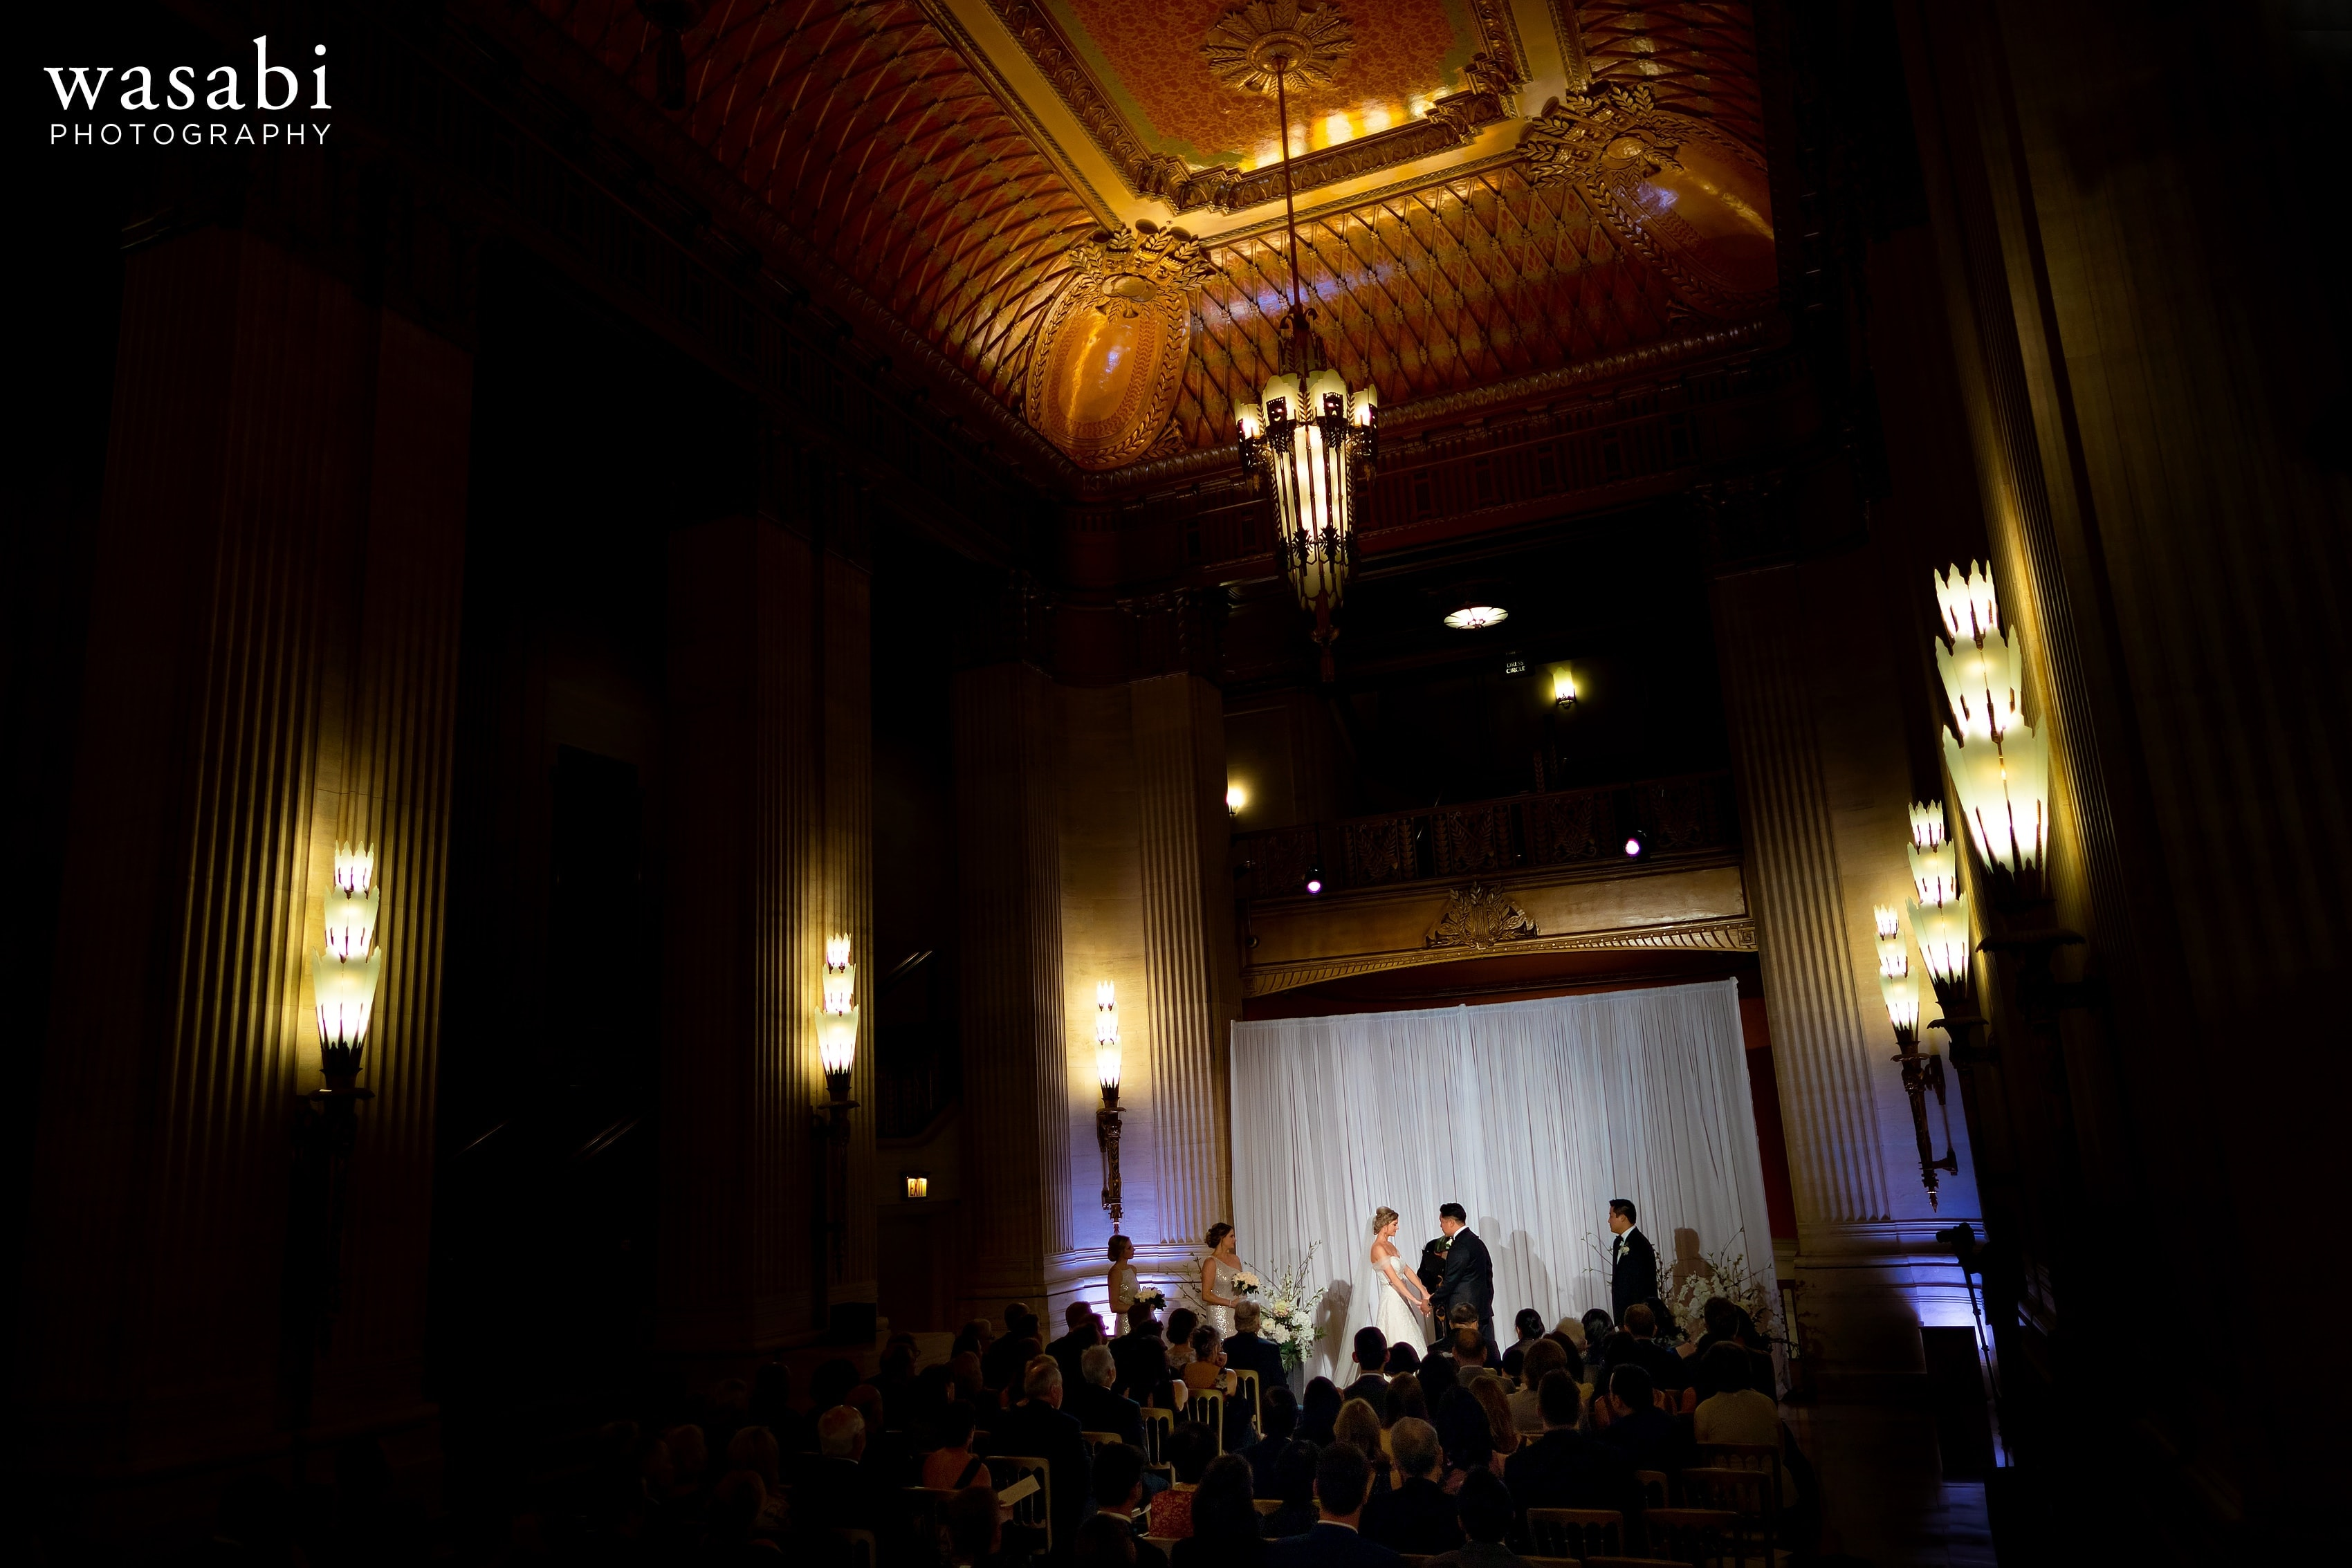 wide angle view of Civic Opera House wedding ceremony showing the entire grand lobby